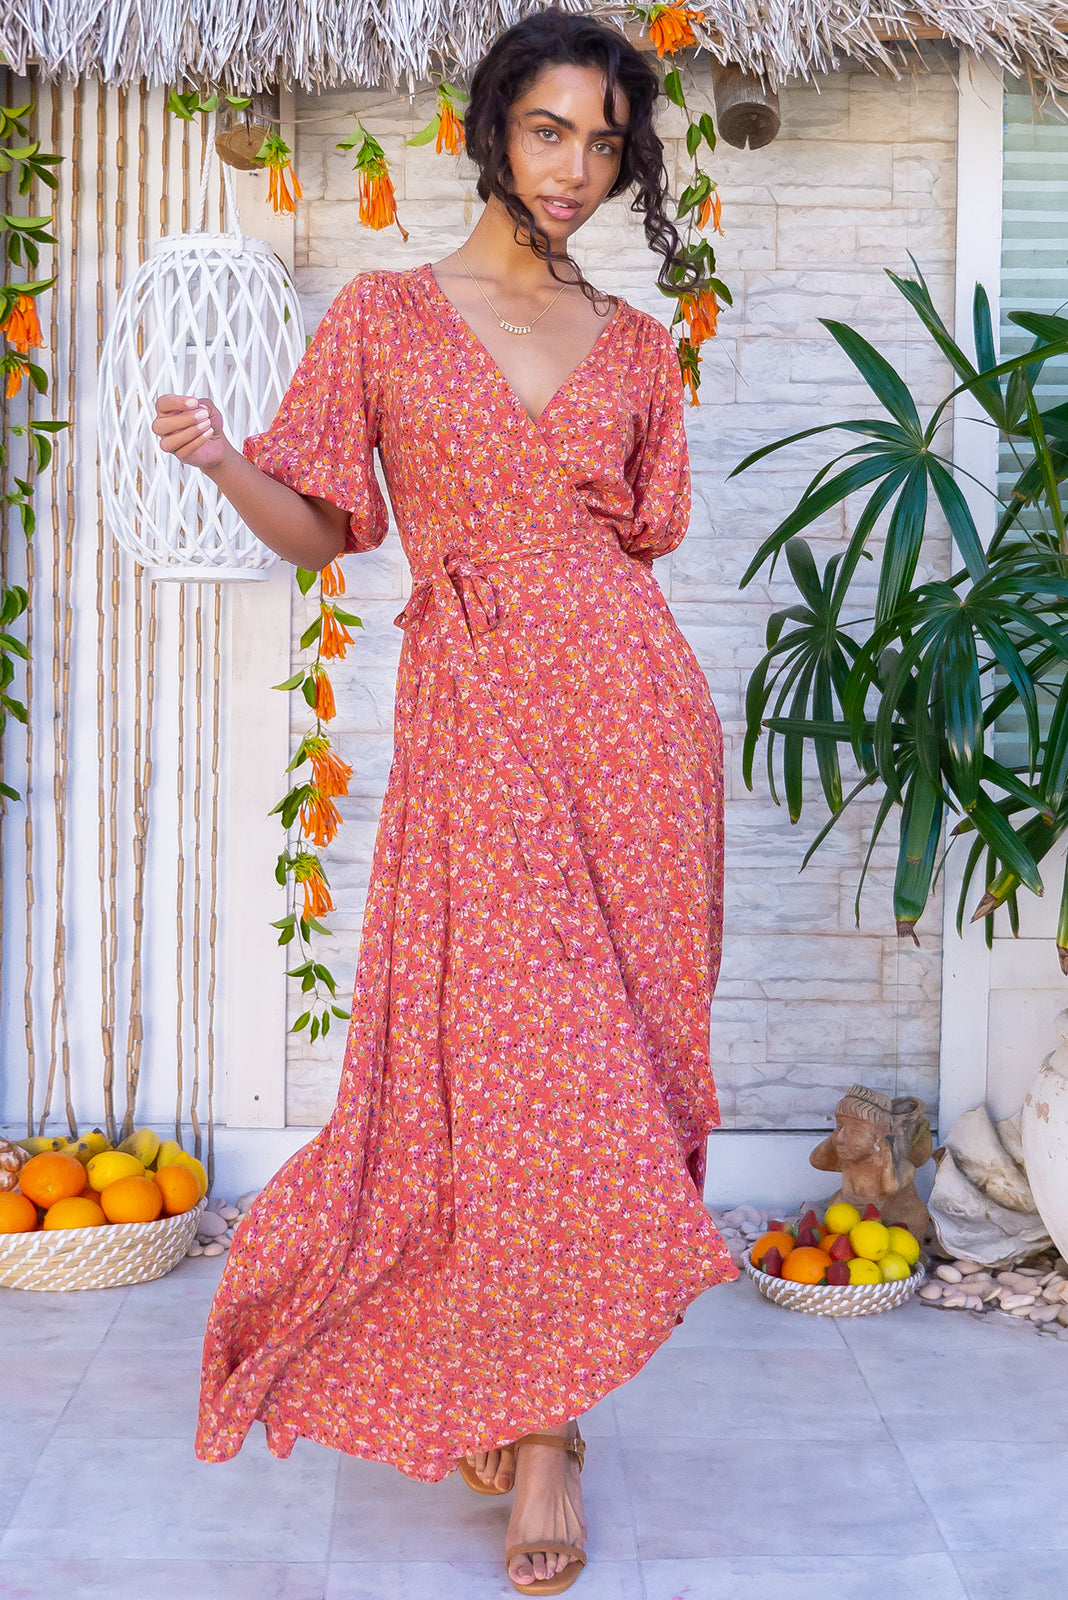 The Posy Terracotta Maxi Wrap Dress features puff sleeves, scooped hemline, shorter at front, flattering adjustable wrap design, elasticated waist band at the back, side pockets and woven 100% rayon in terracotta base with floral pattern.